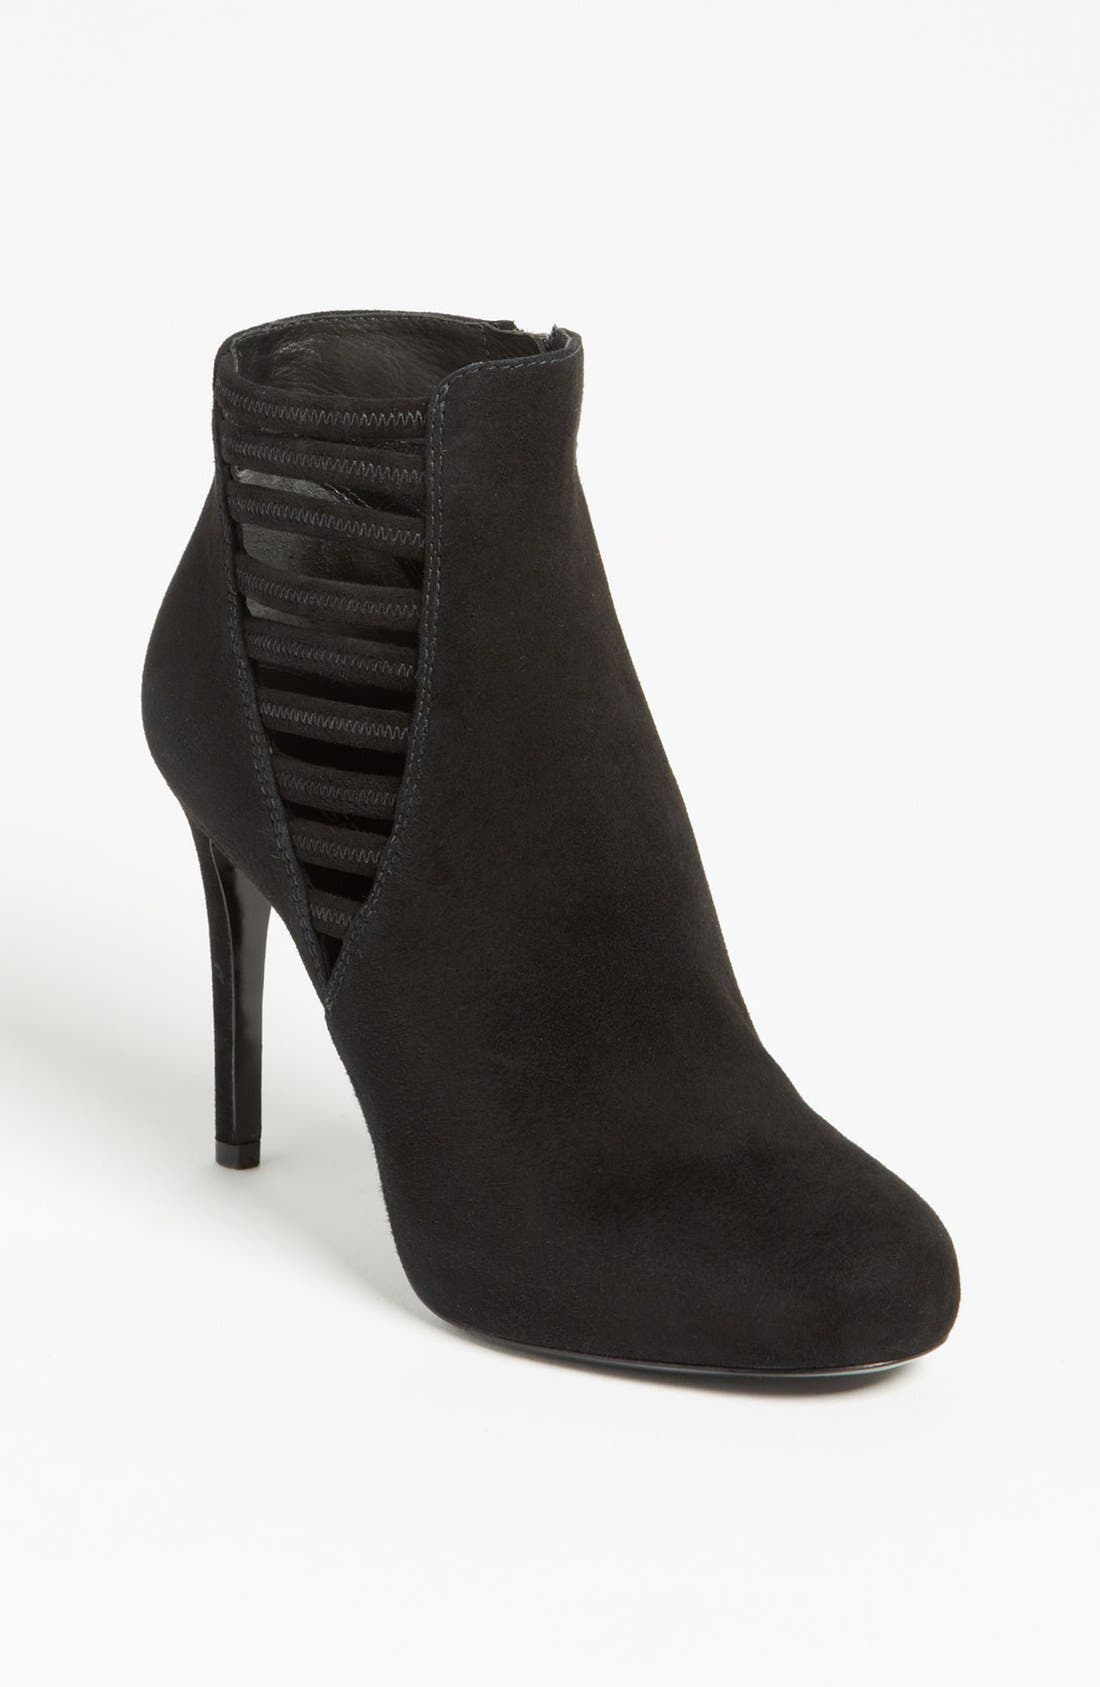 Alternate Image 1 Selected - Via Spiga 'Bleu' Bootie